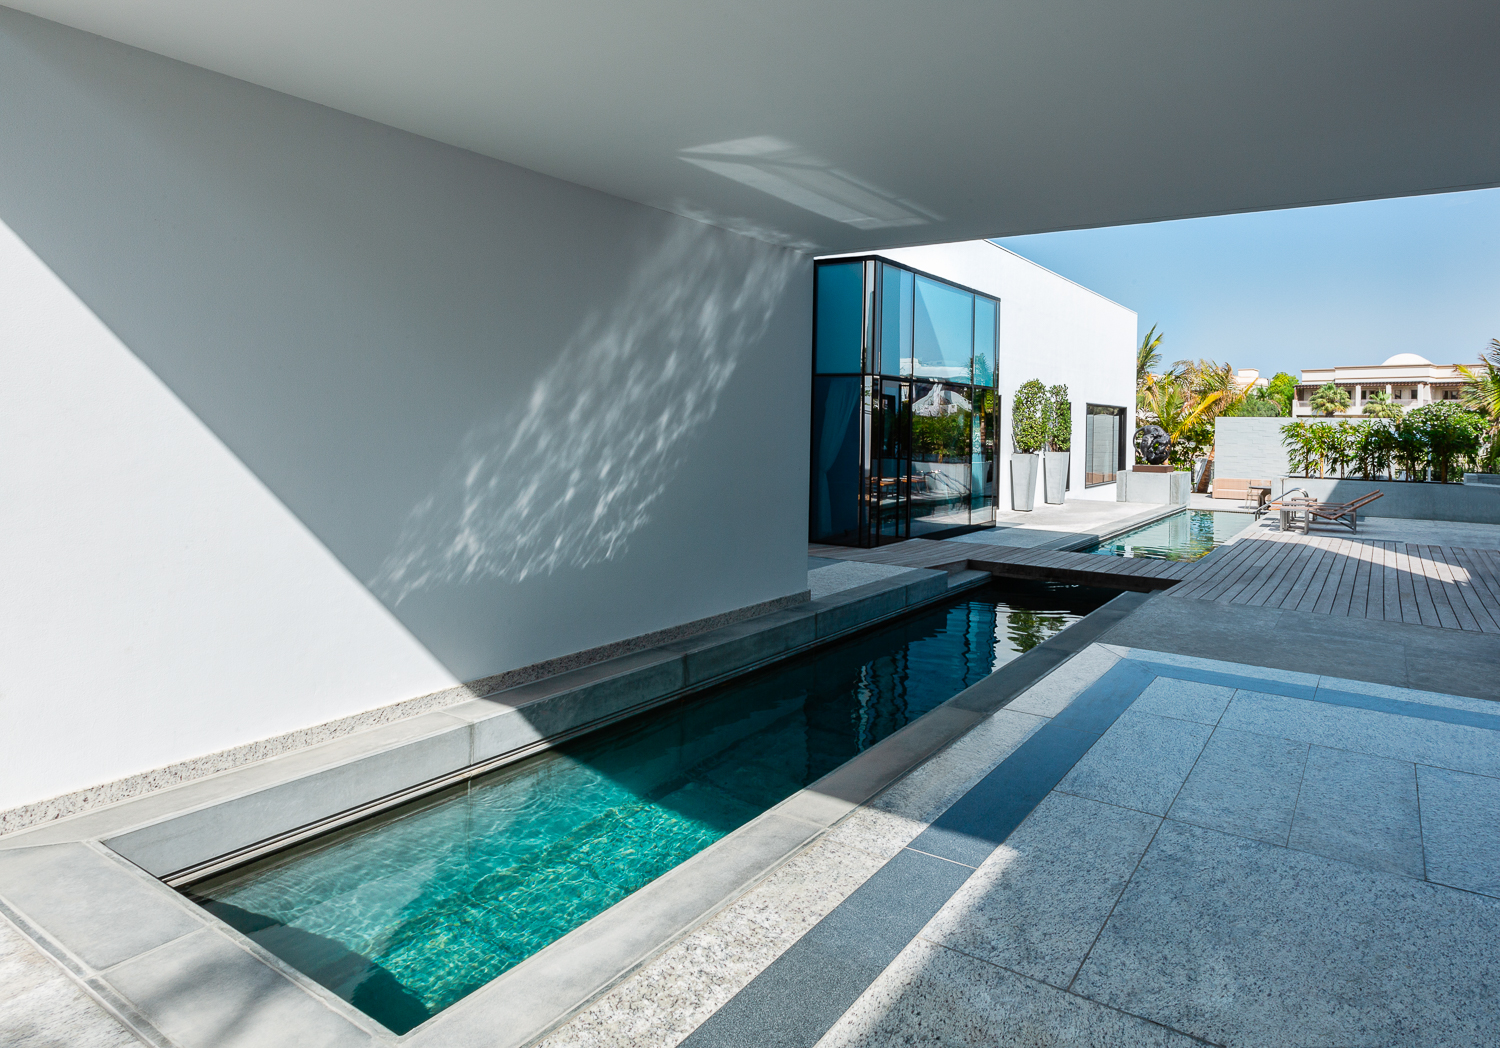 Lap pool in private courtyard by top architectural photographers Ella Bessette, San Francisco California